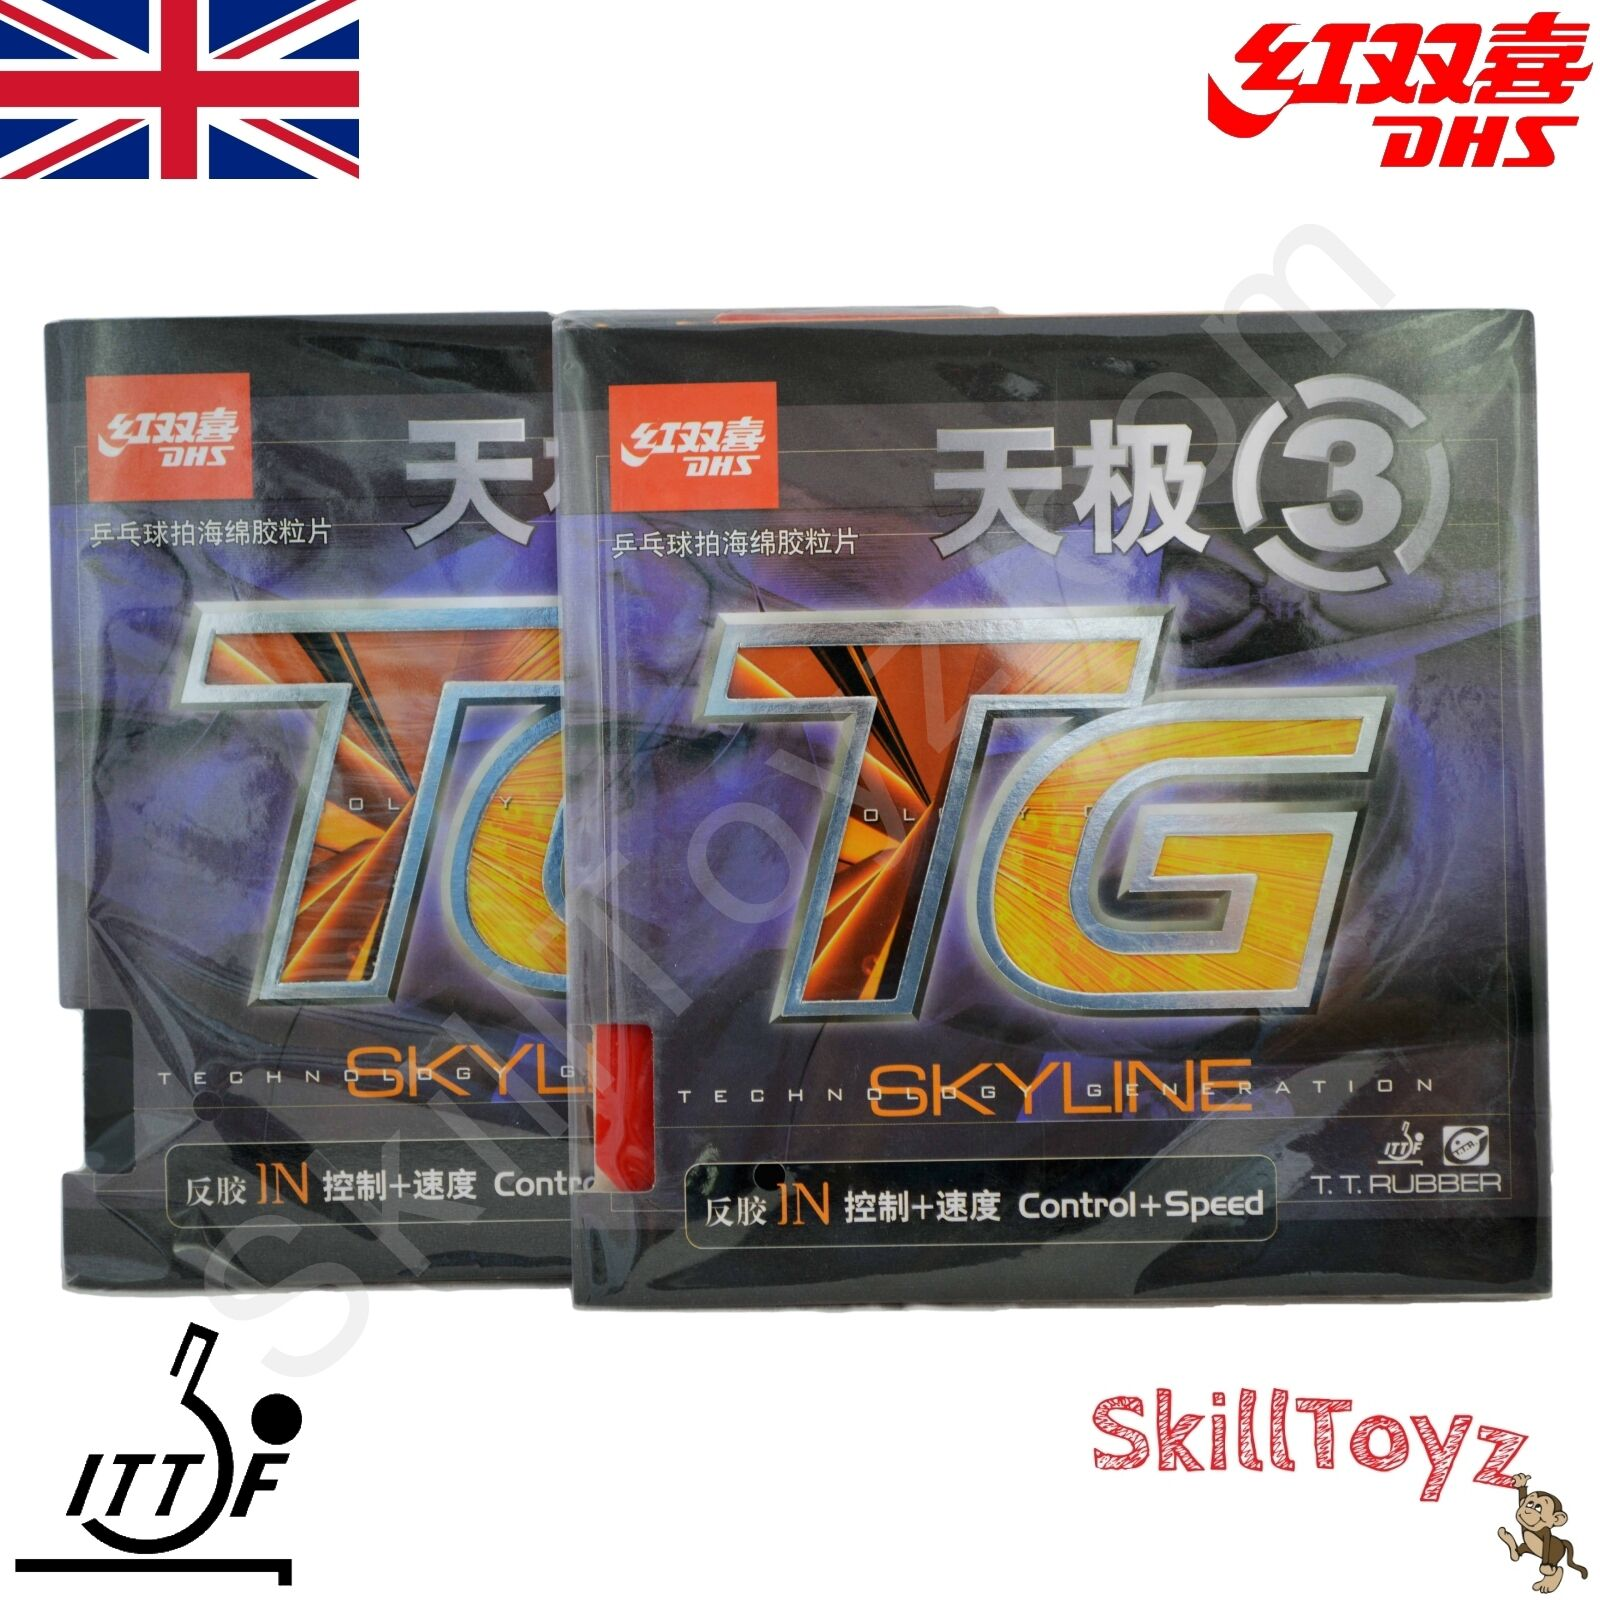 2 x DHS Skyline TG 3 control and speed ITTF Table Tennis Bat Rubbers - UK Seller